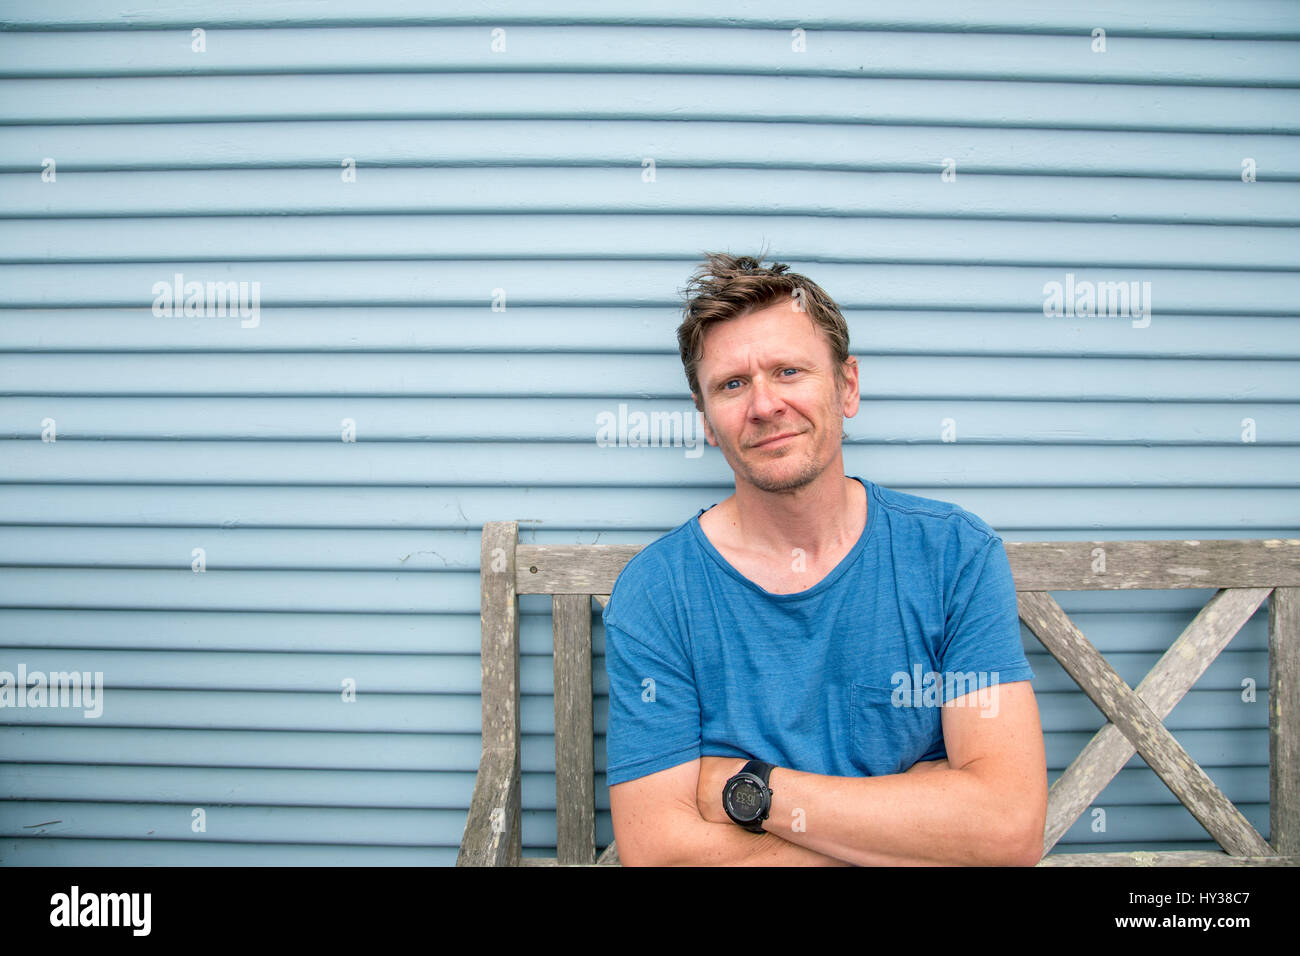 USA, California, Pacific Grove, Man sitting on old wooden bench - Stock Image